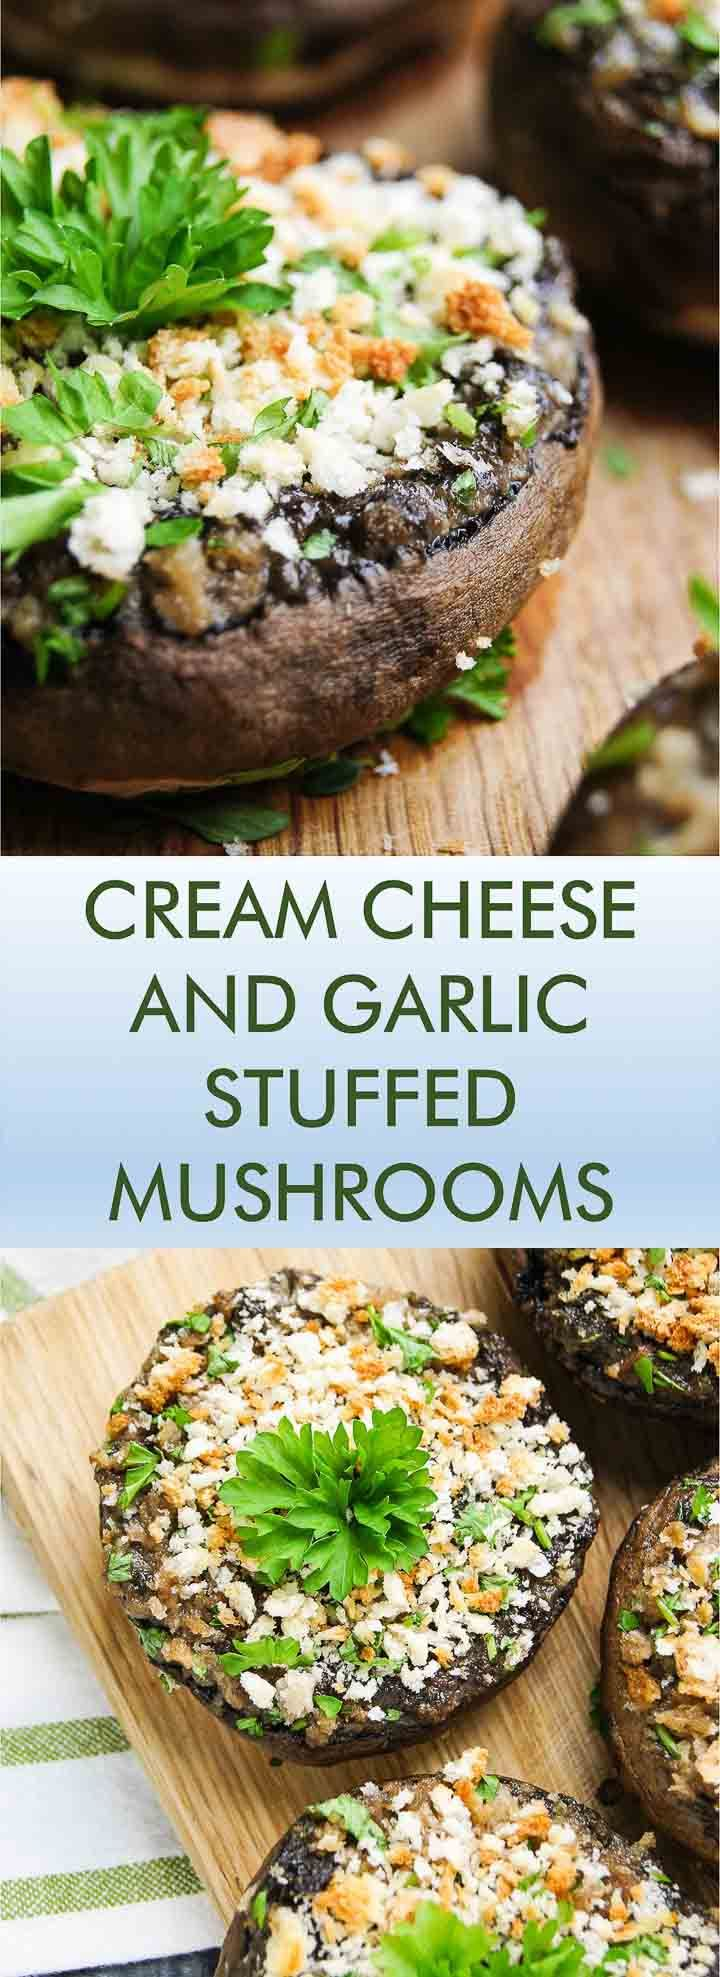 Cream Cheese and Garlic Stuffed Mushrooms is an old classic - this 30 min recipe is easy, delicious and will make you come back for just one more again and again! | garlicmatters.com